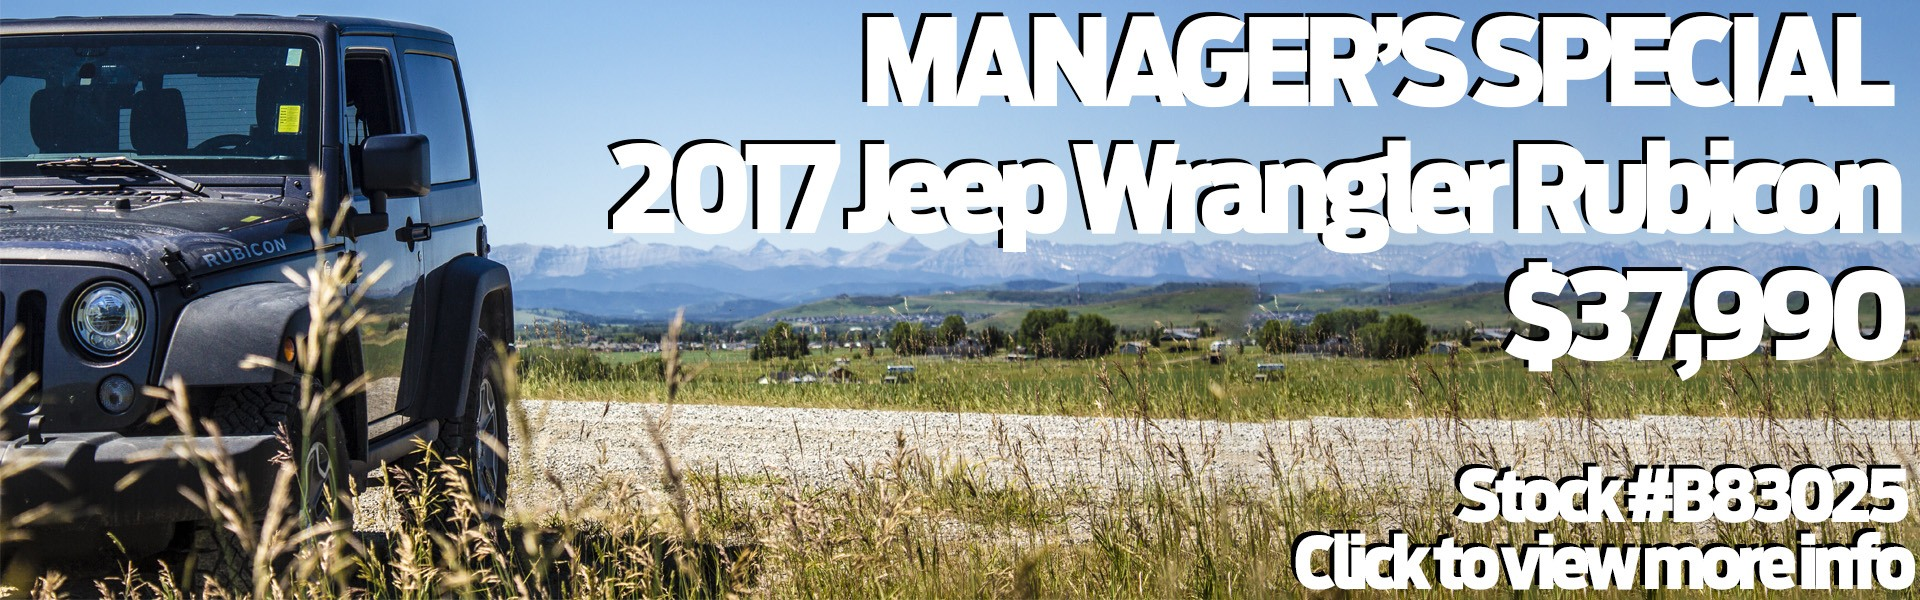 Jeep Wrangler Rubicon 2017 Special Offer